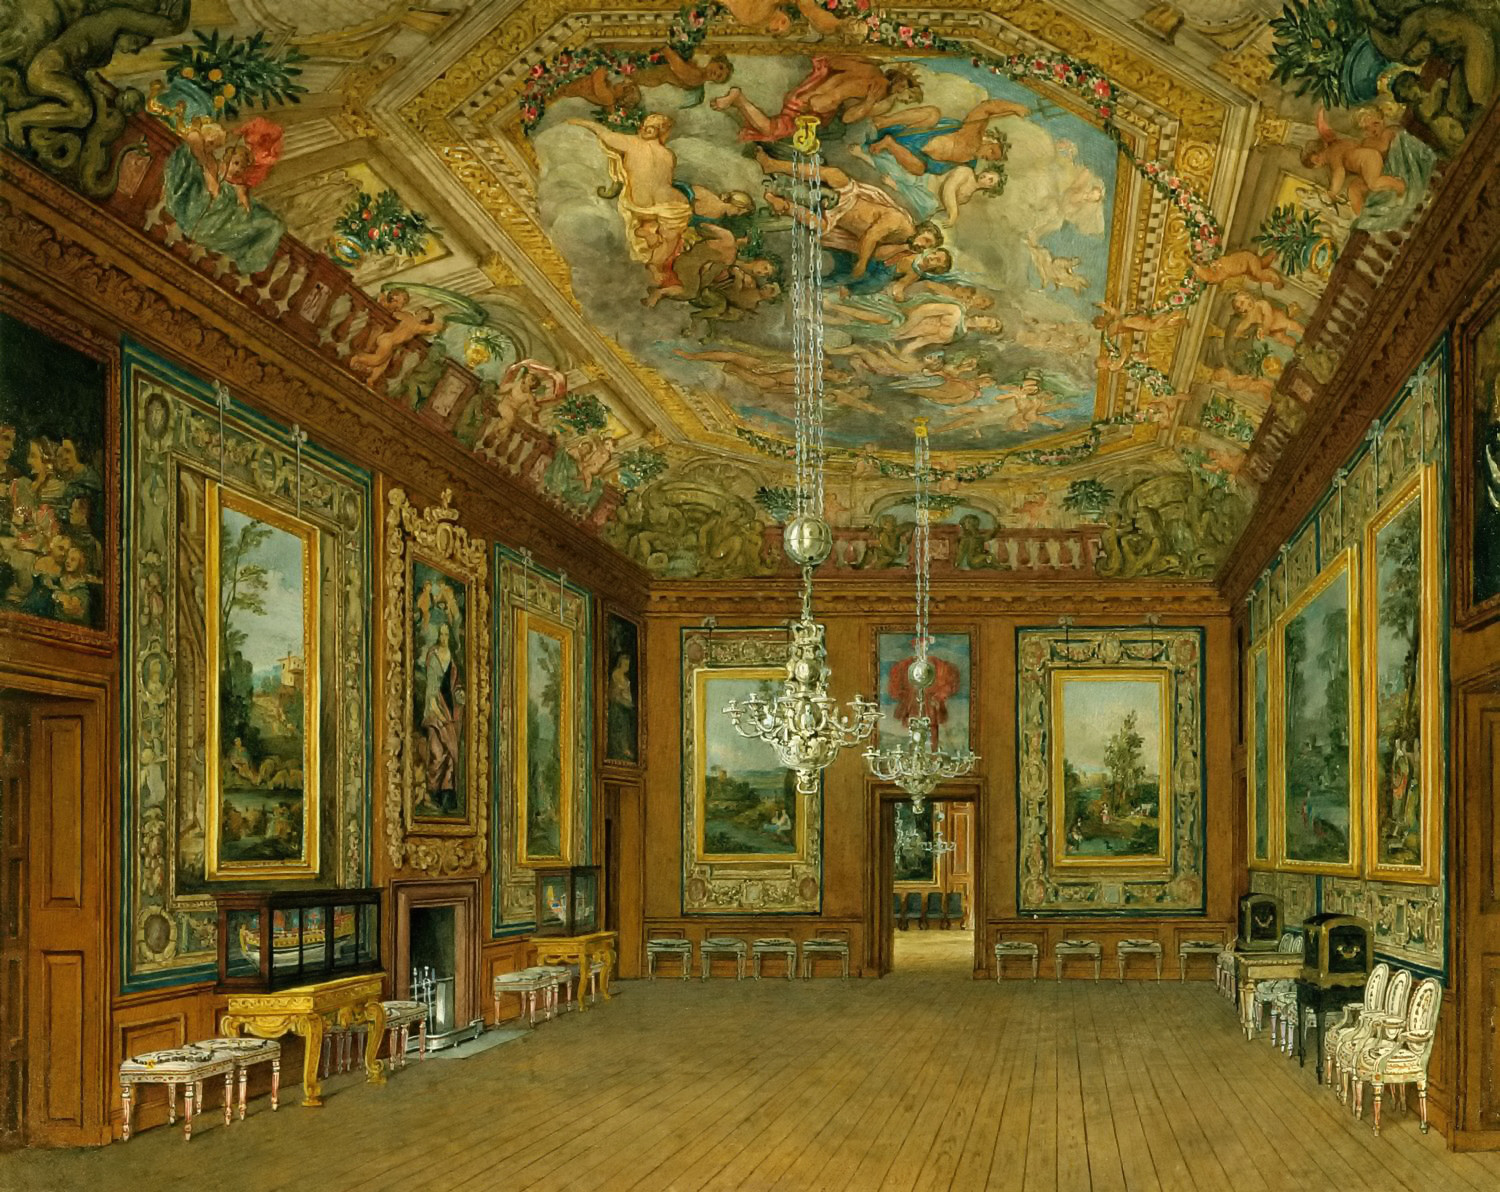 The Queen's Drawing Room, by Charles Wild, 1816